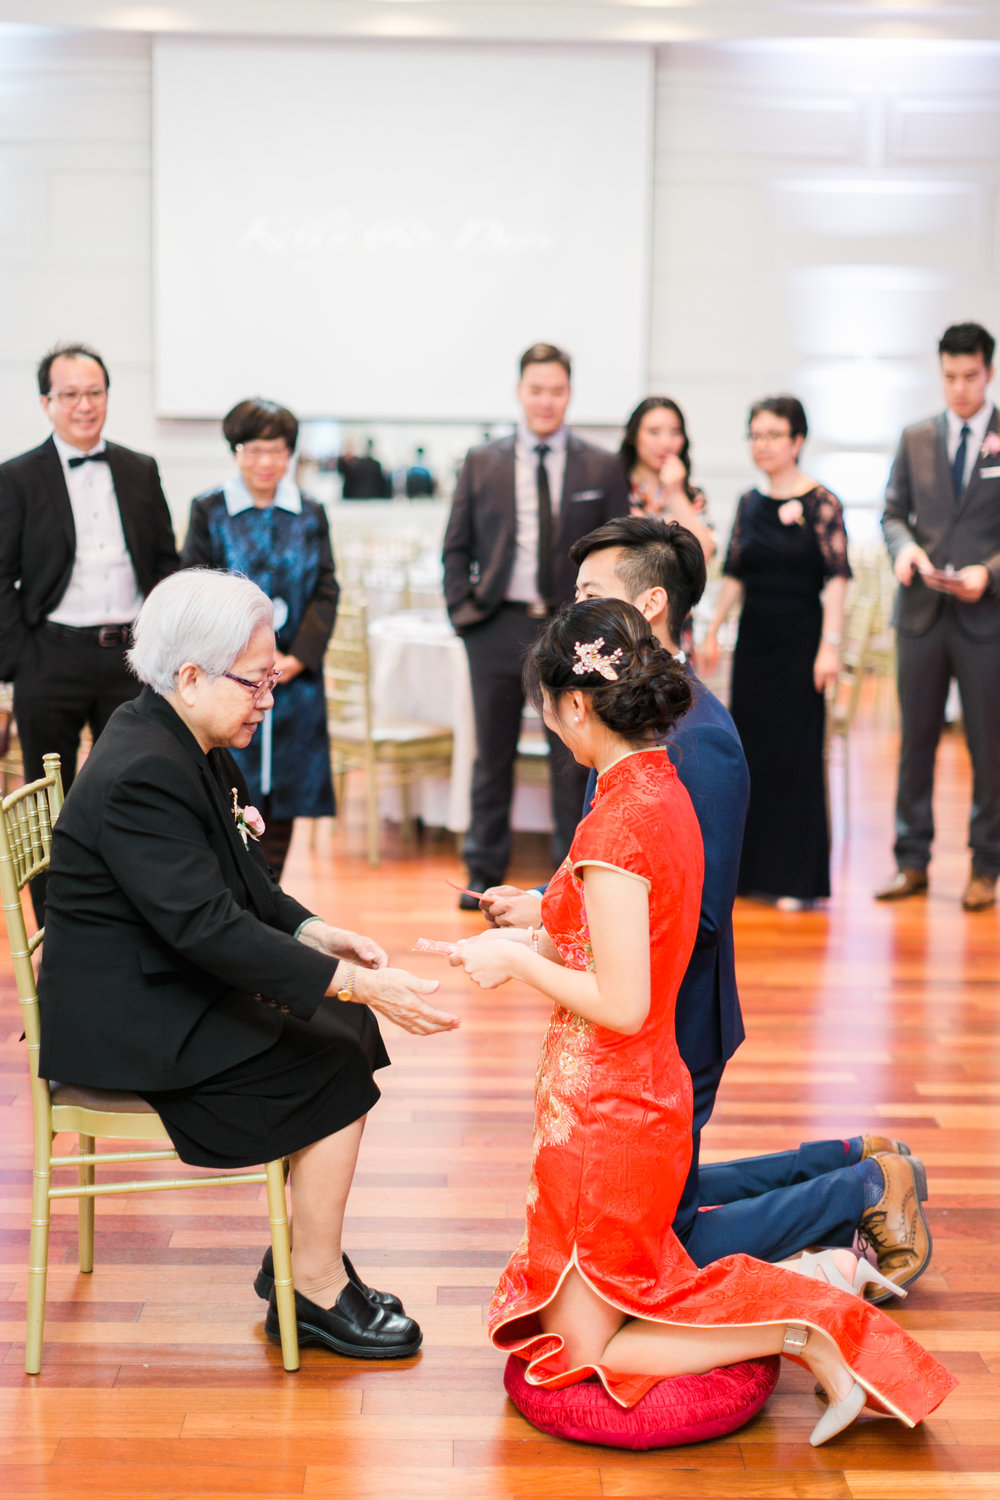 Toronto Fine Art Photographer - Terrace Banquet Hall Wedding - Tea Ceremony-9.jpg